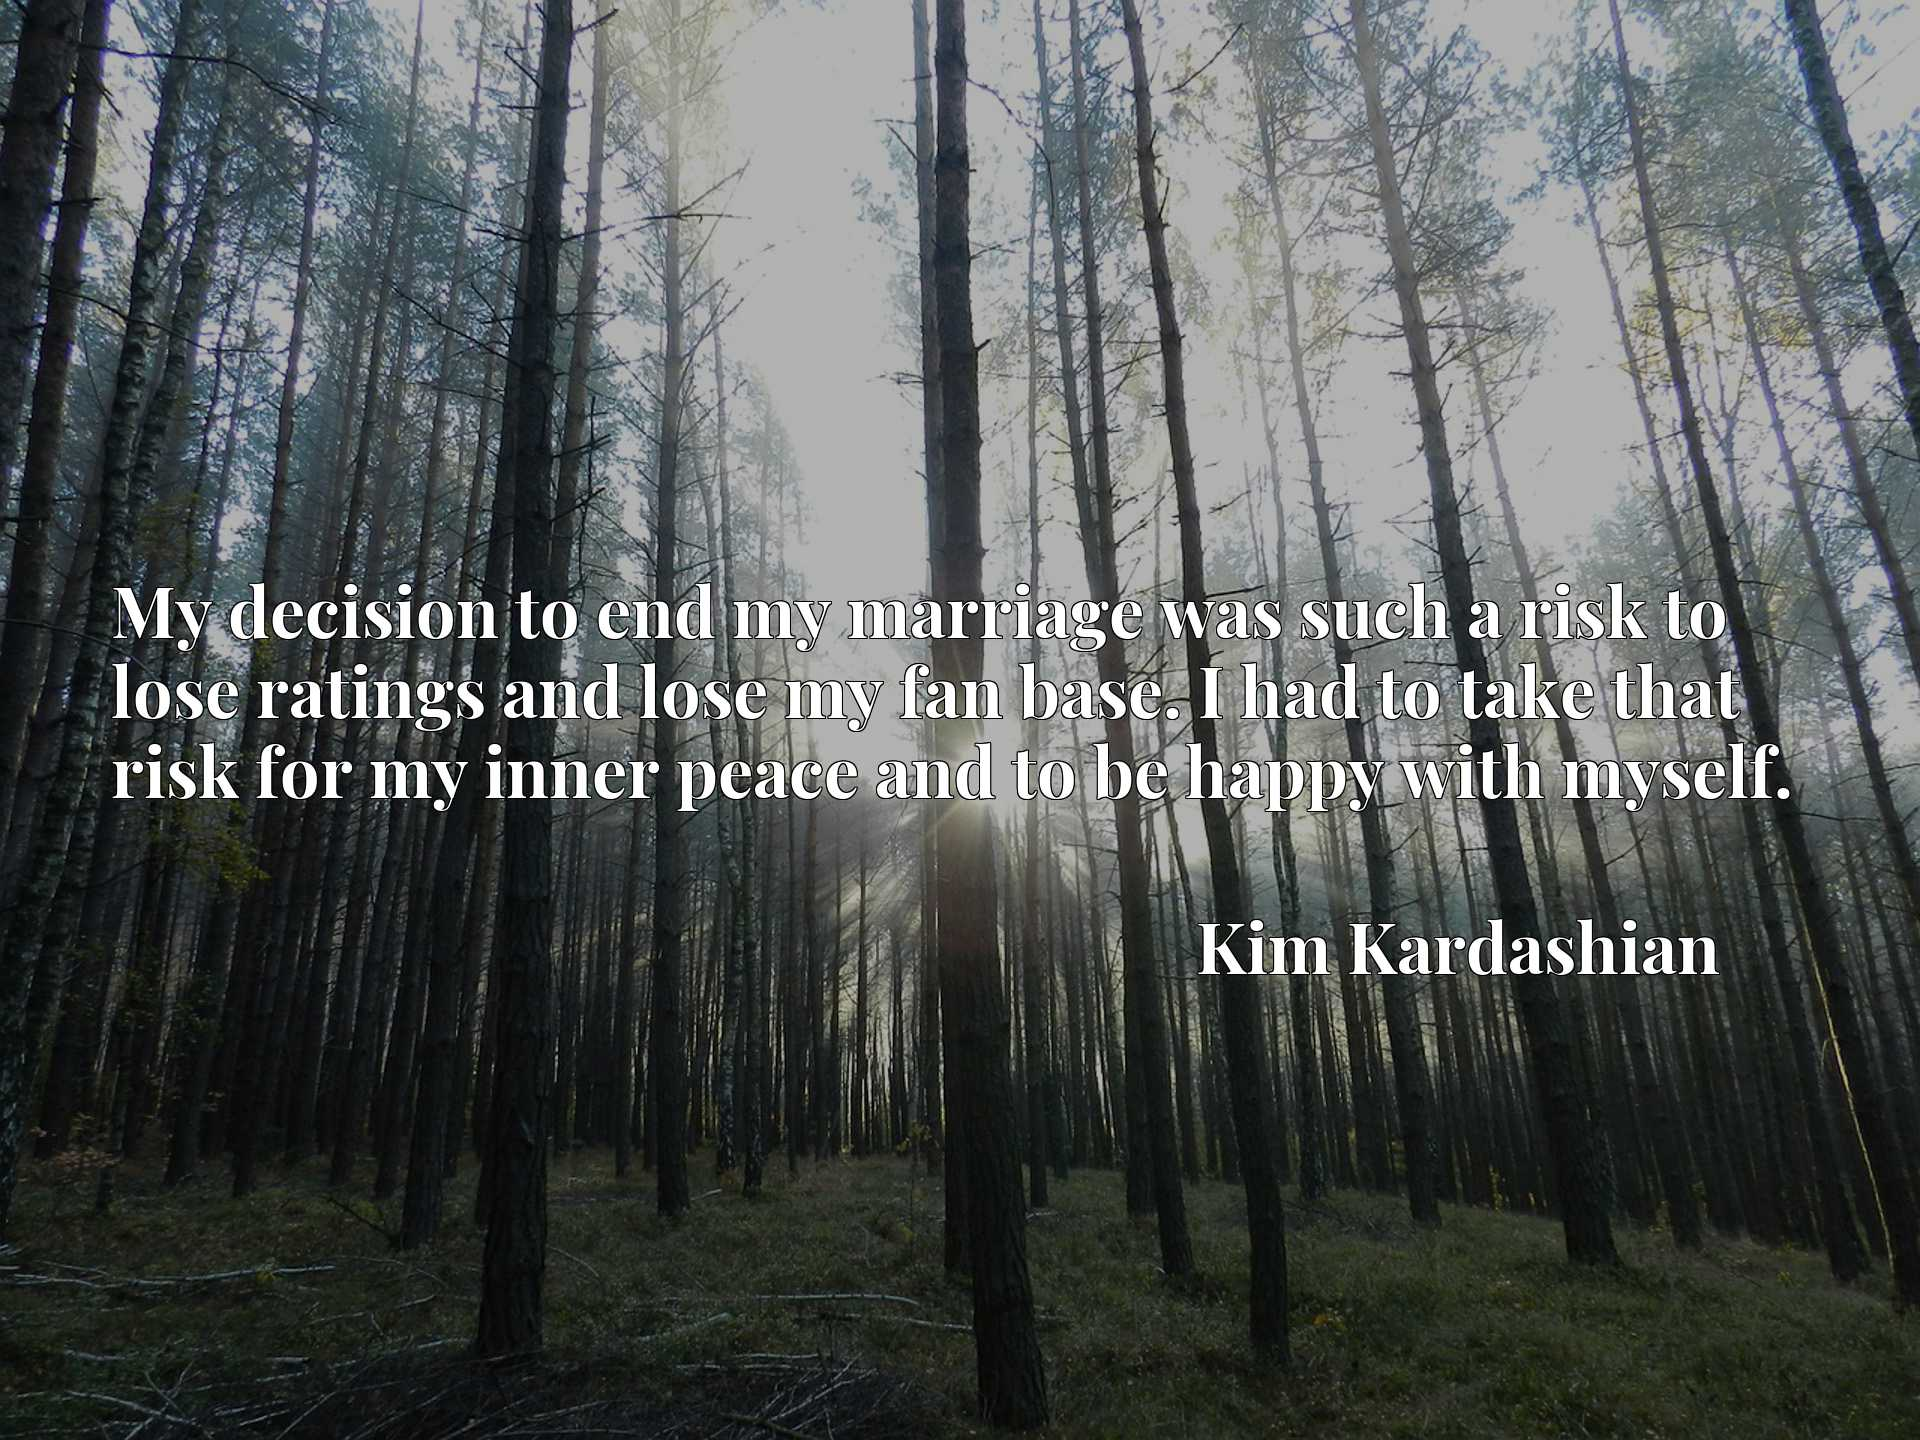 Quote Picture :My decision to end my marriage was such a risk to lose ratings and lose my fan base. I had to take that risk for my inner peace and to be happy with myself.